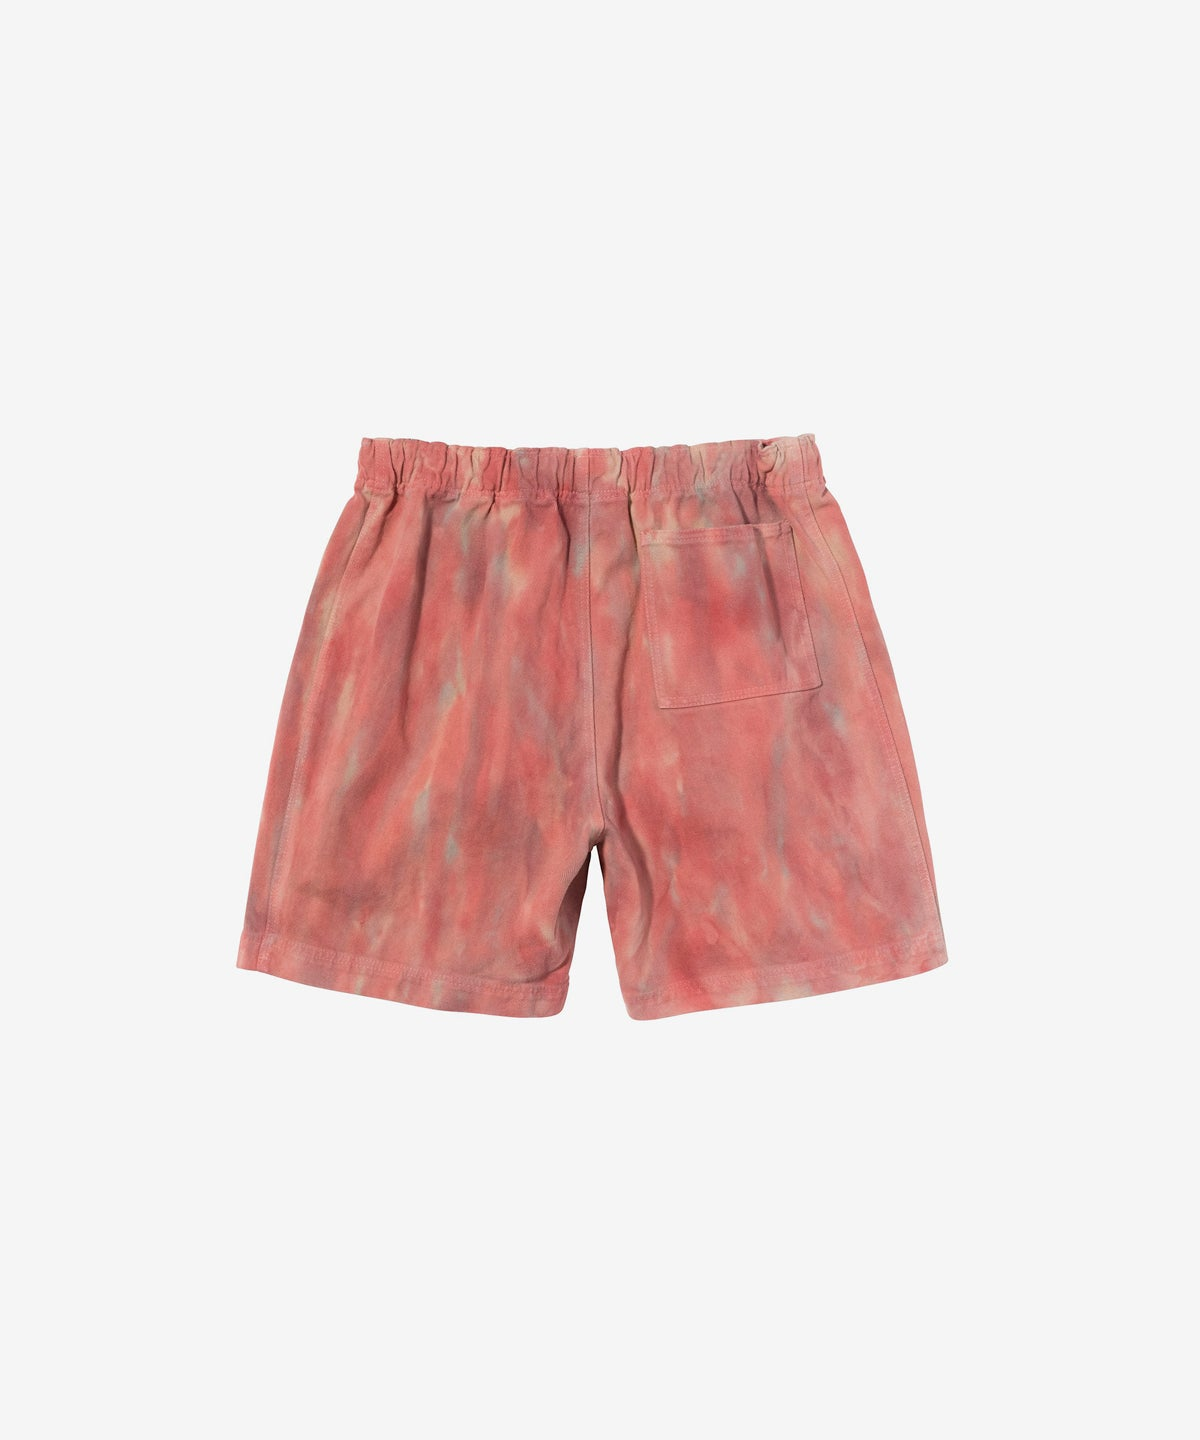 Image of STUSSY_DYED BEACH SHORT :::RUST:::